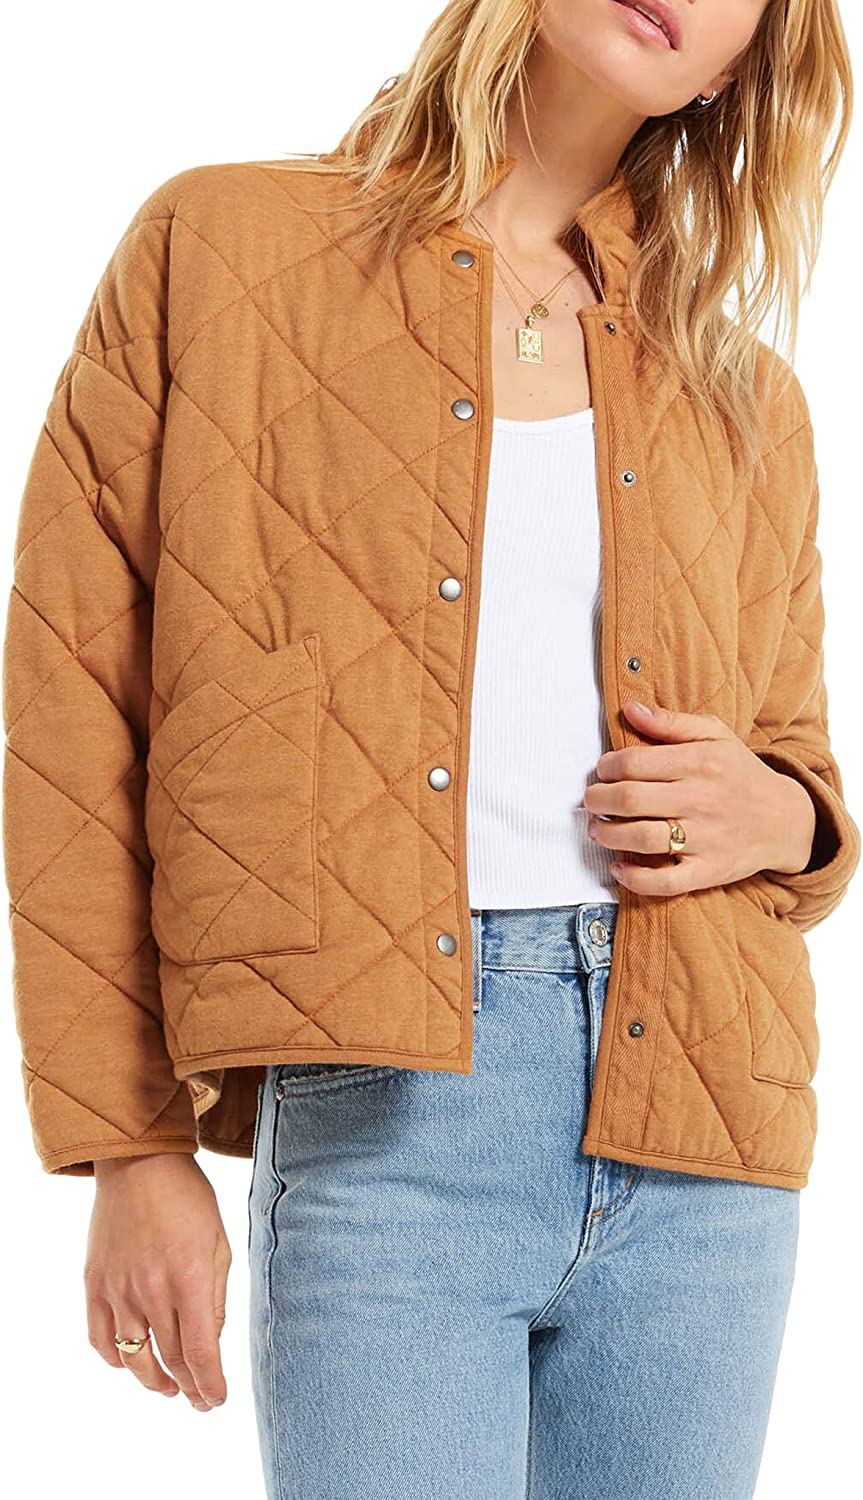 Maya Quilted Jacket in Camel Brown by Z Supply ZJ203646